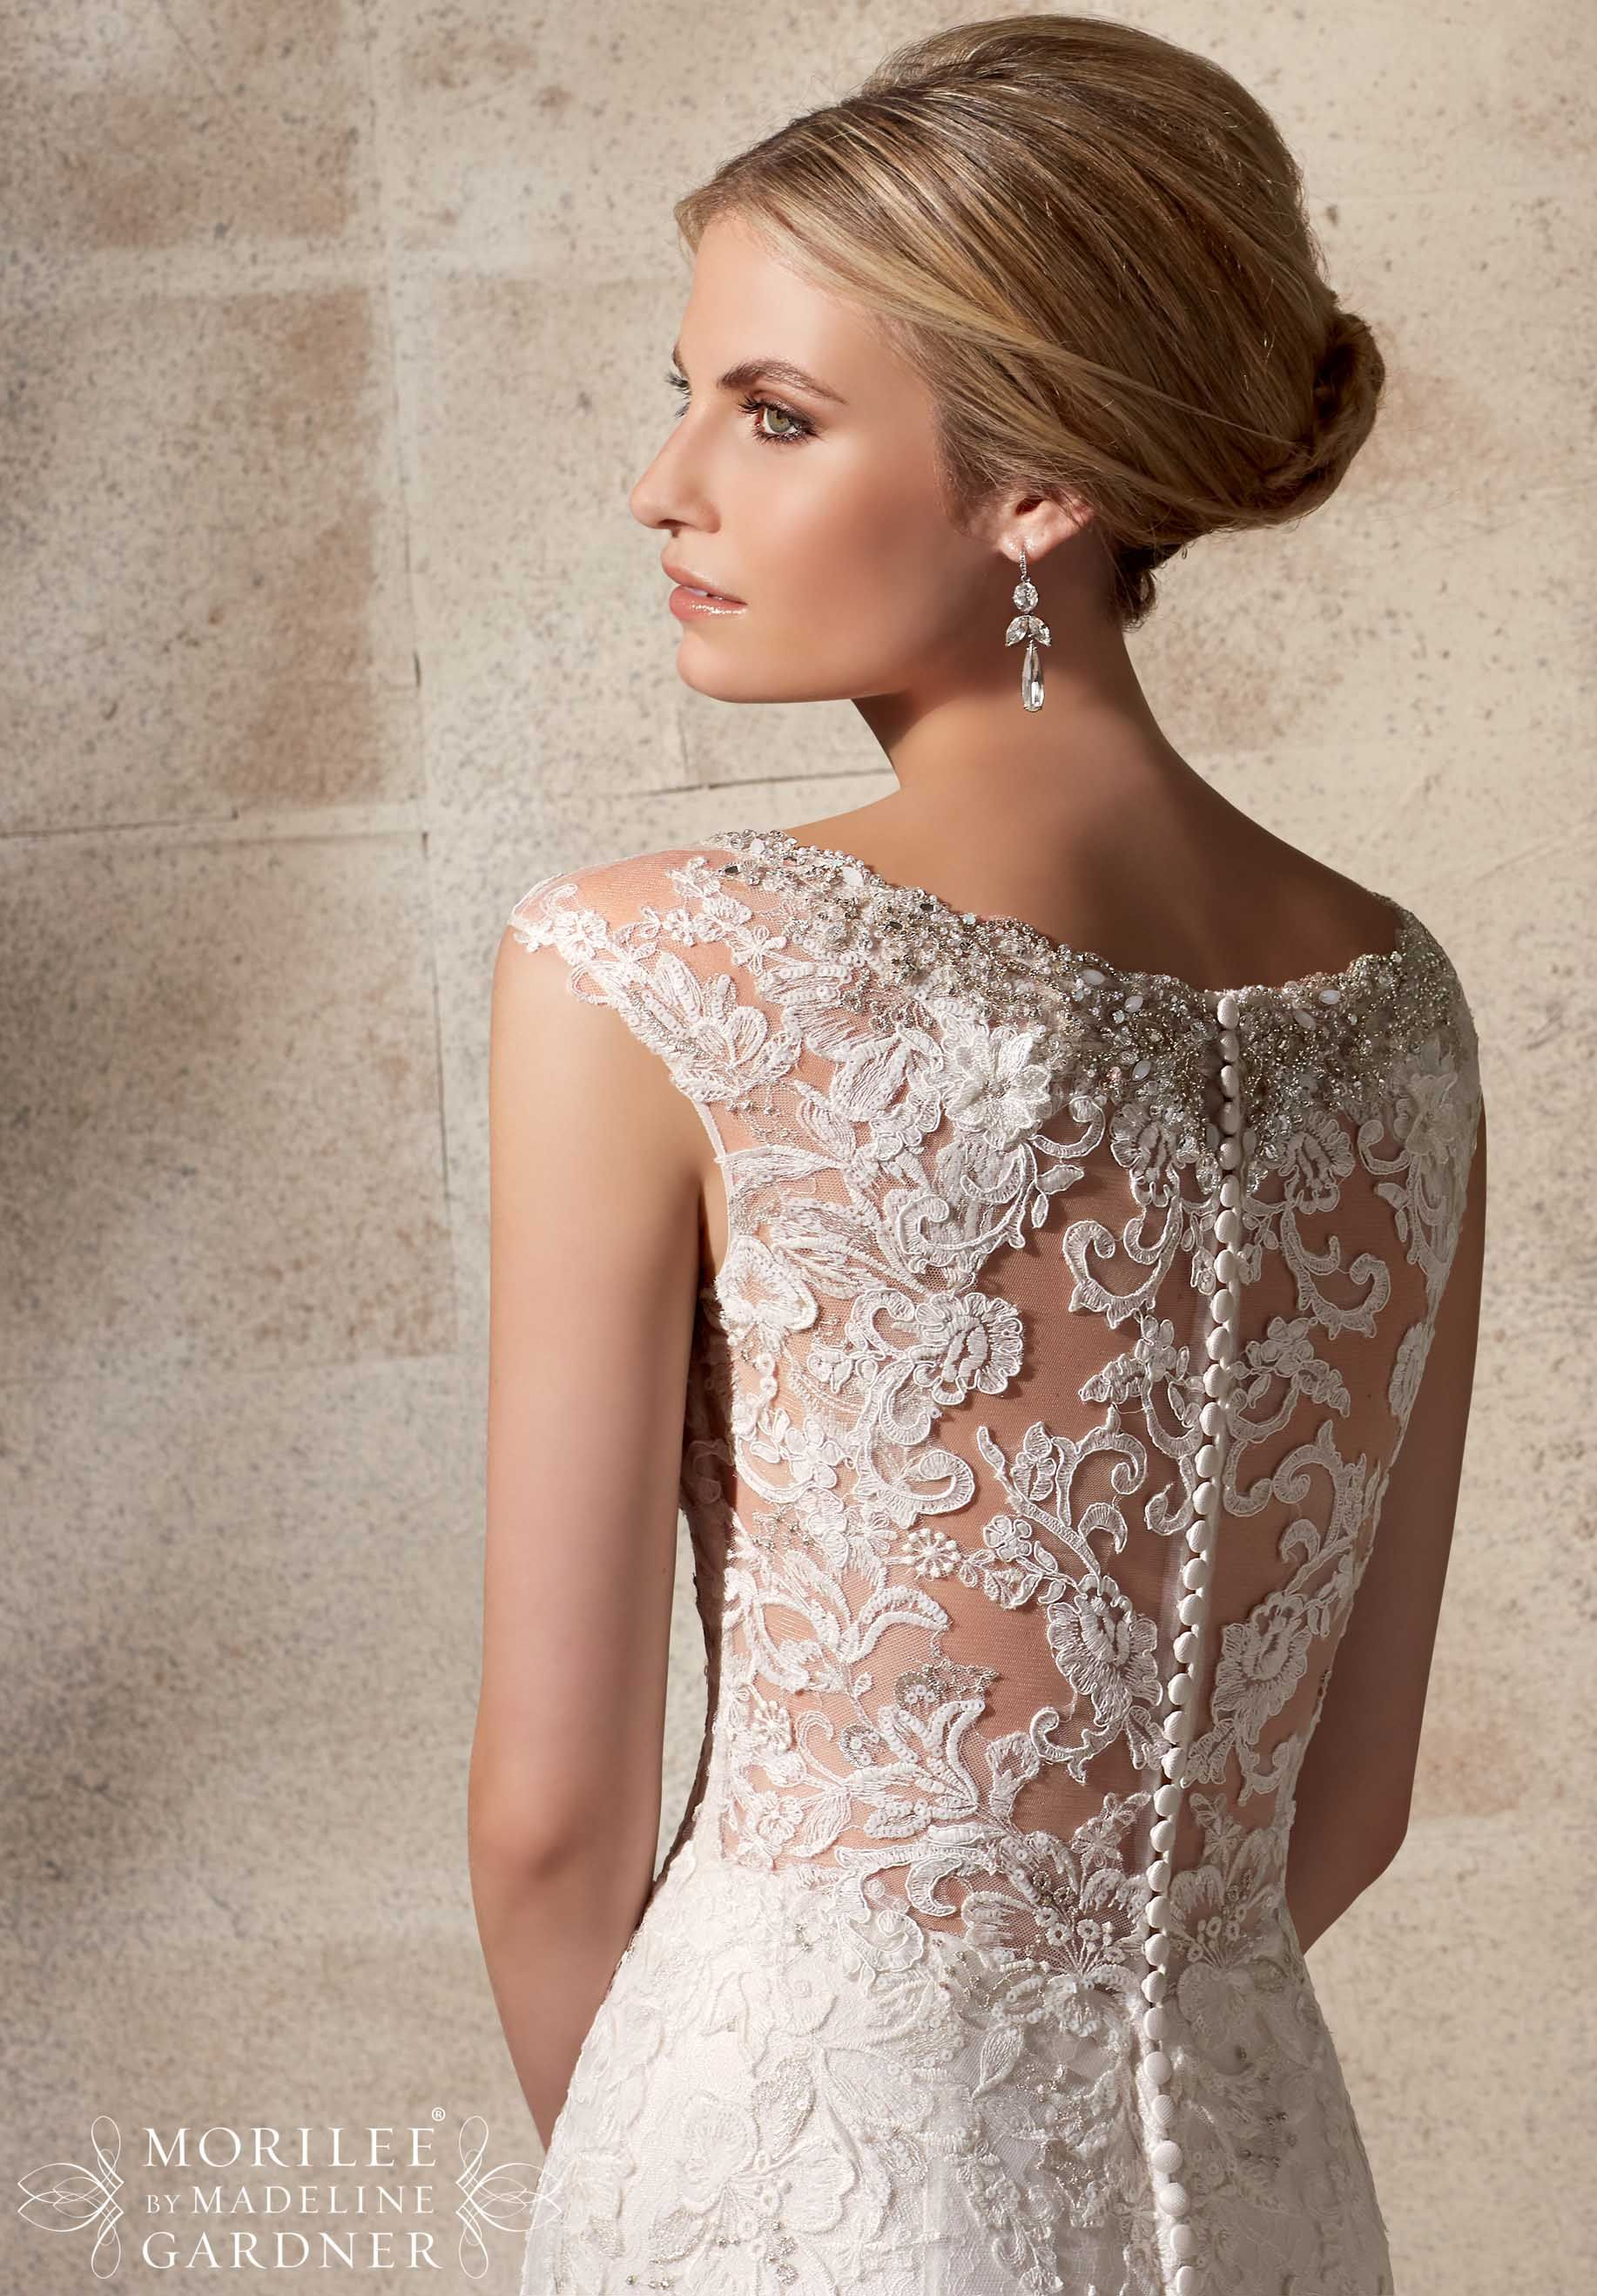 2702 Bridal Gowns Dresses Embroidered Appliques On Net Over Chantilly Lace With Crystal Beading